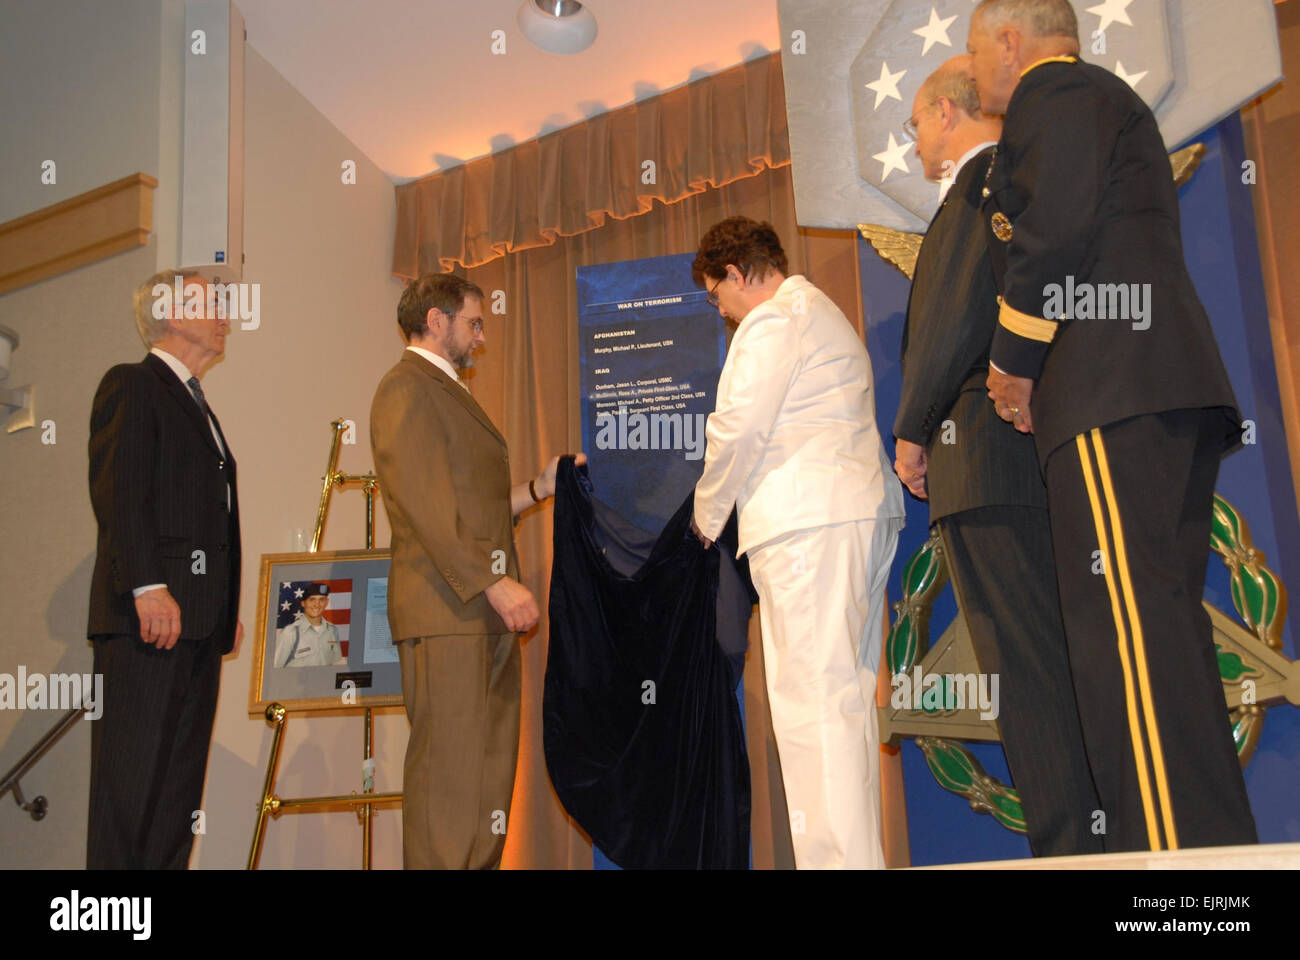 Hall of Heroes 1  Carrie McLeroy June 03, 2008  Tom and Romayne McGinnis unveil the Hall of Heroes plaque to show - Stock Image